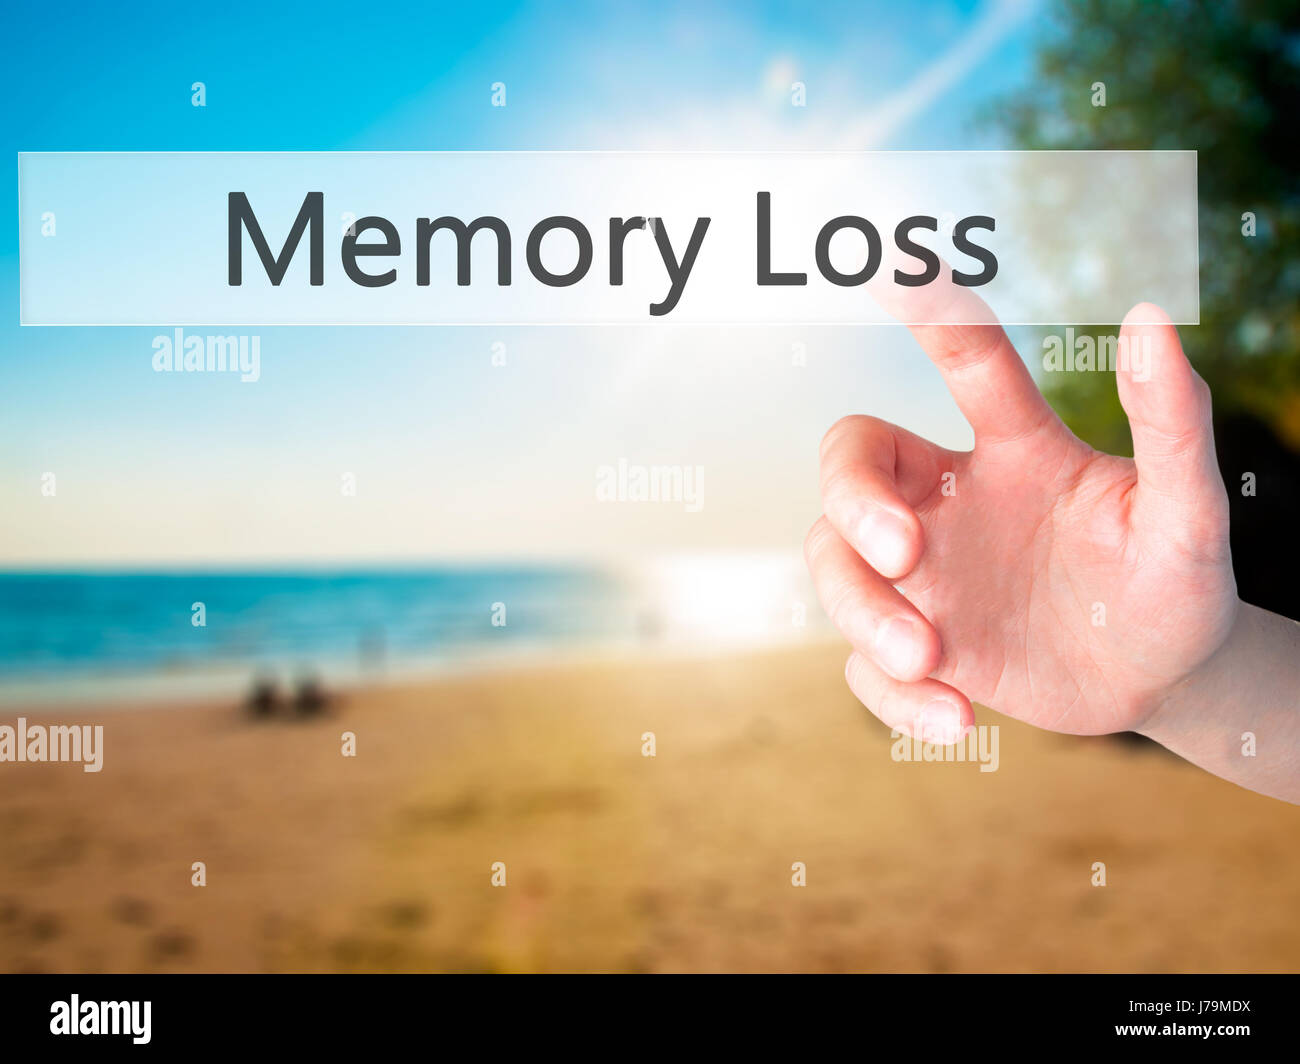 Memory Loss - Hand pressing a button on blurred background concept . Business, technology, internet concept. Stock - Stock Image